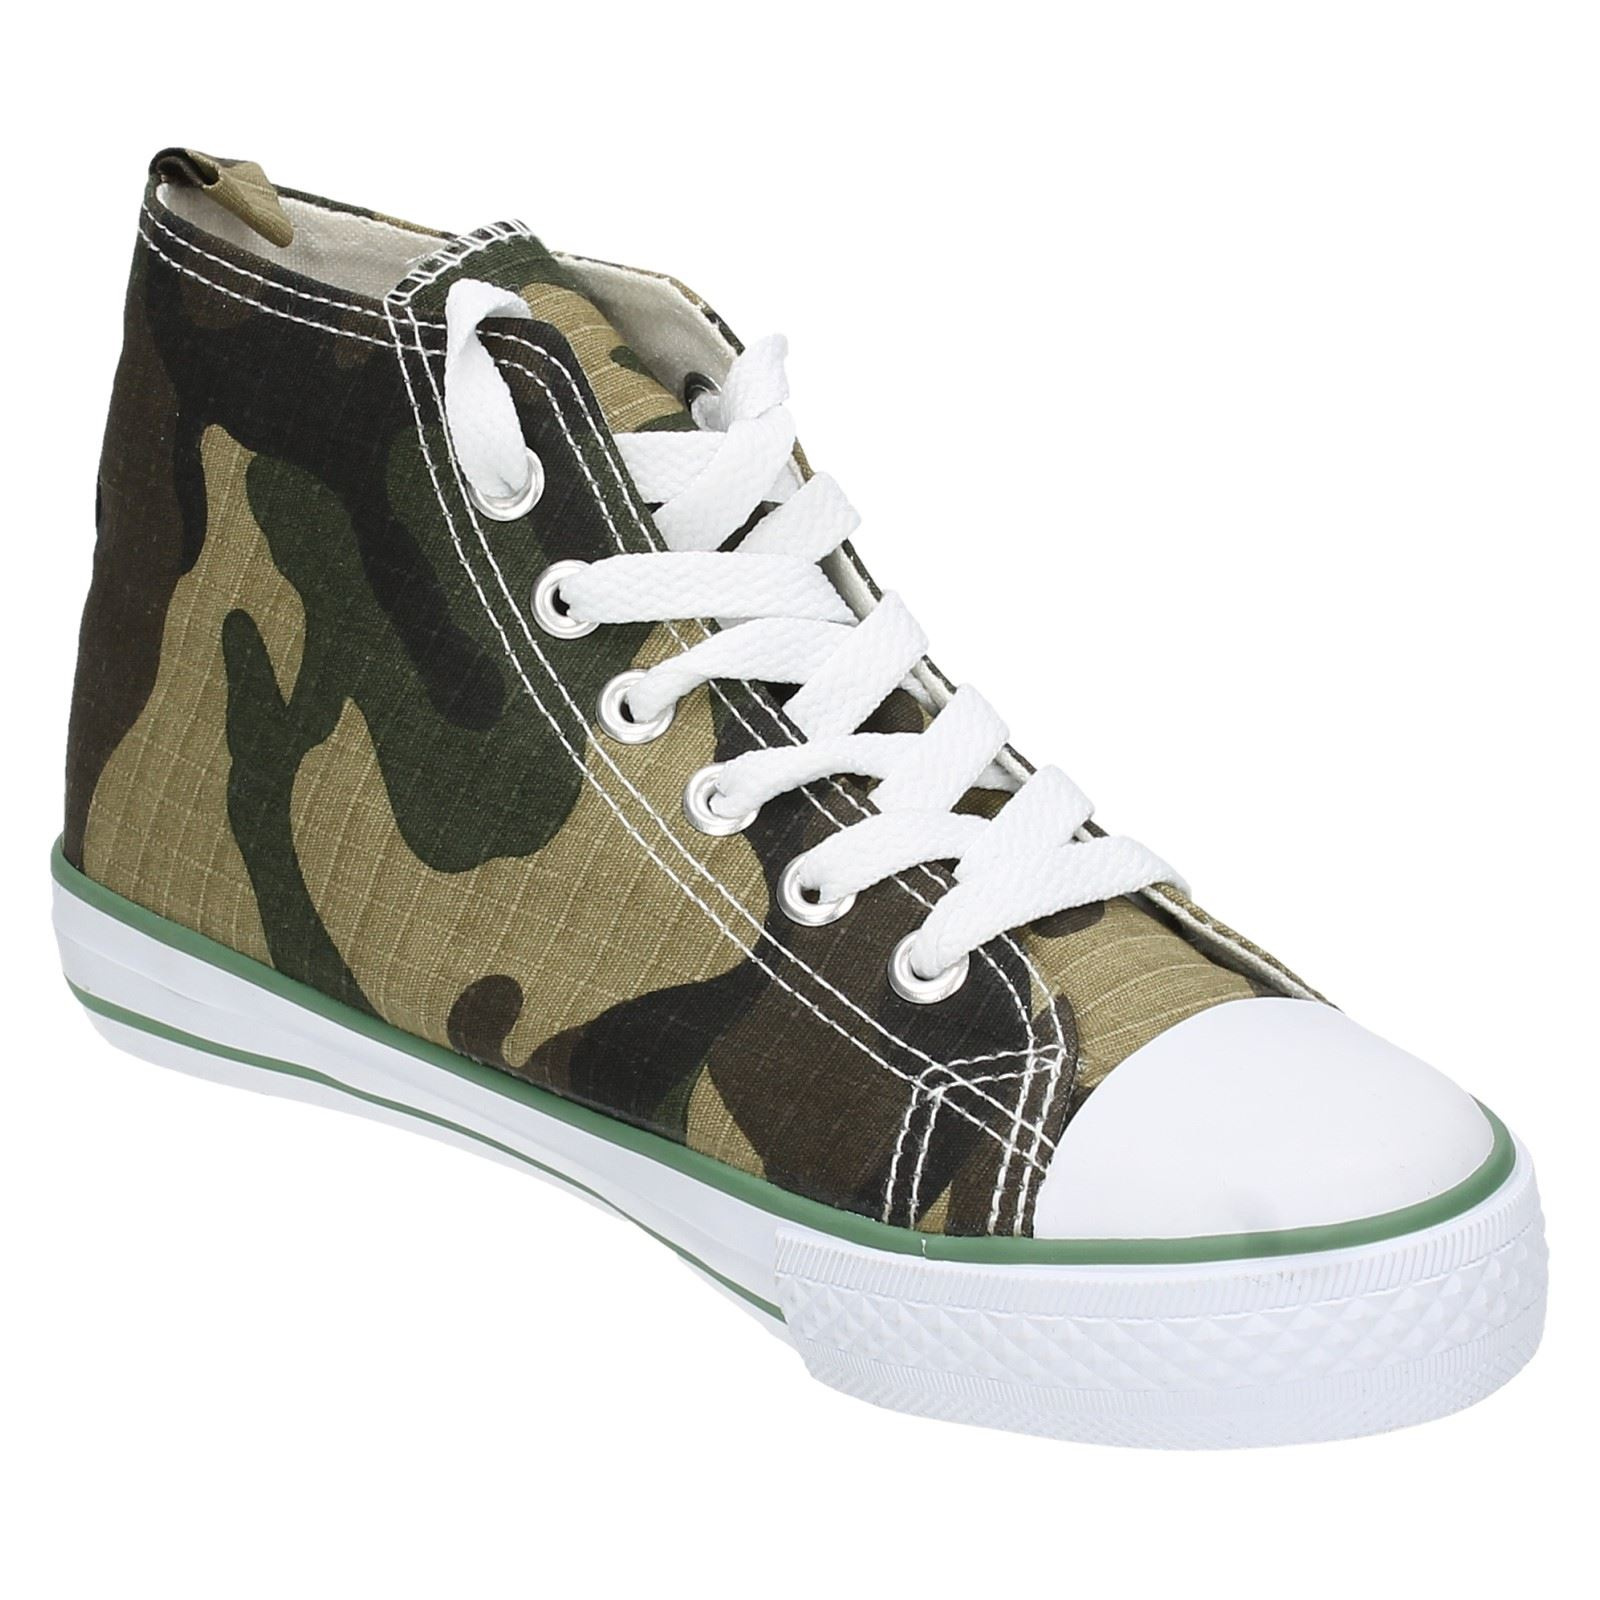 Boys JCDees Rounded Toe Camouflage Lace Up Canvas Shoes